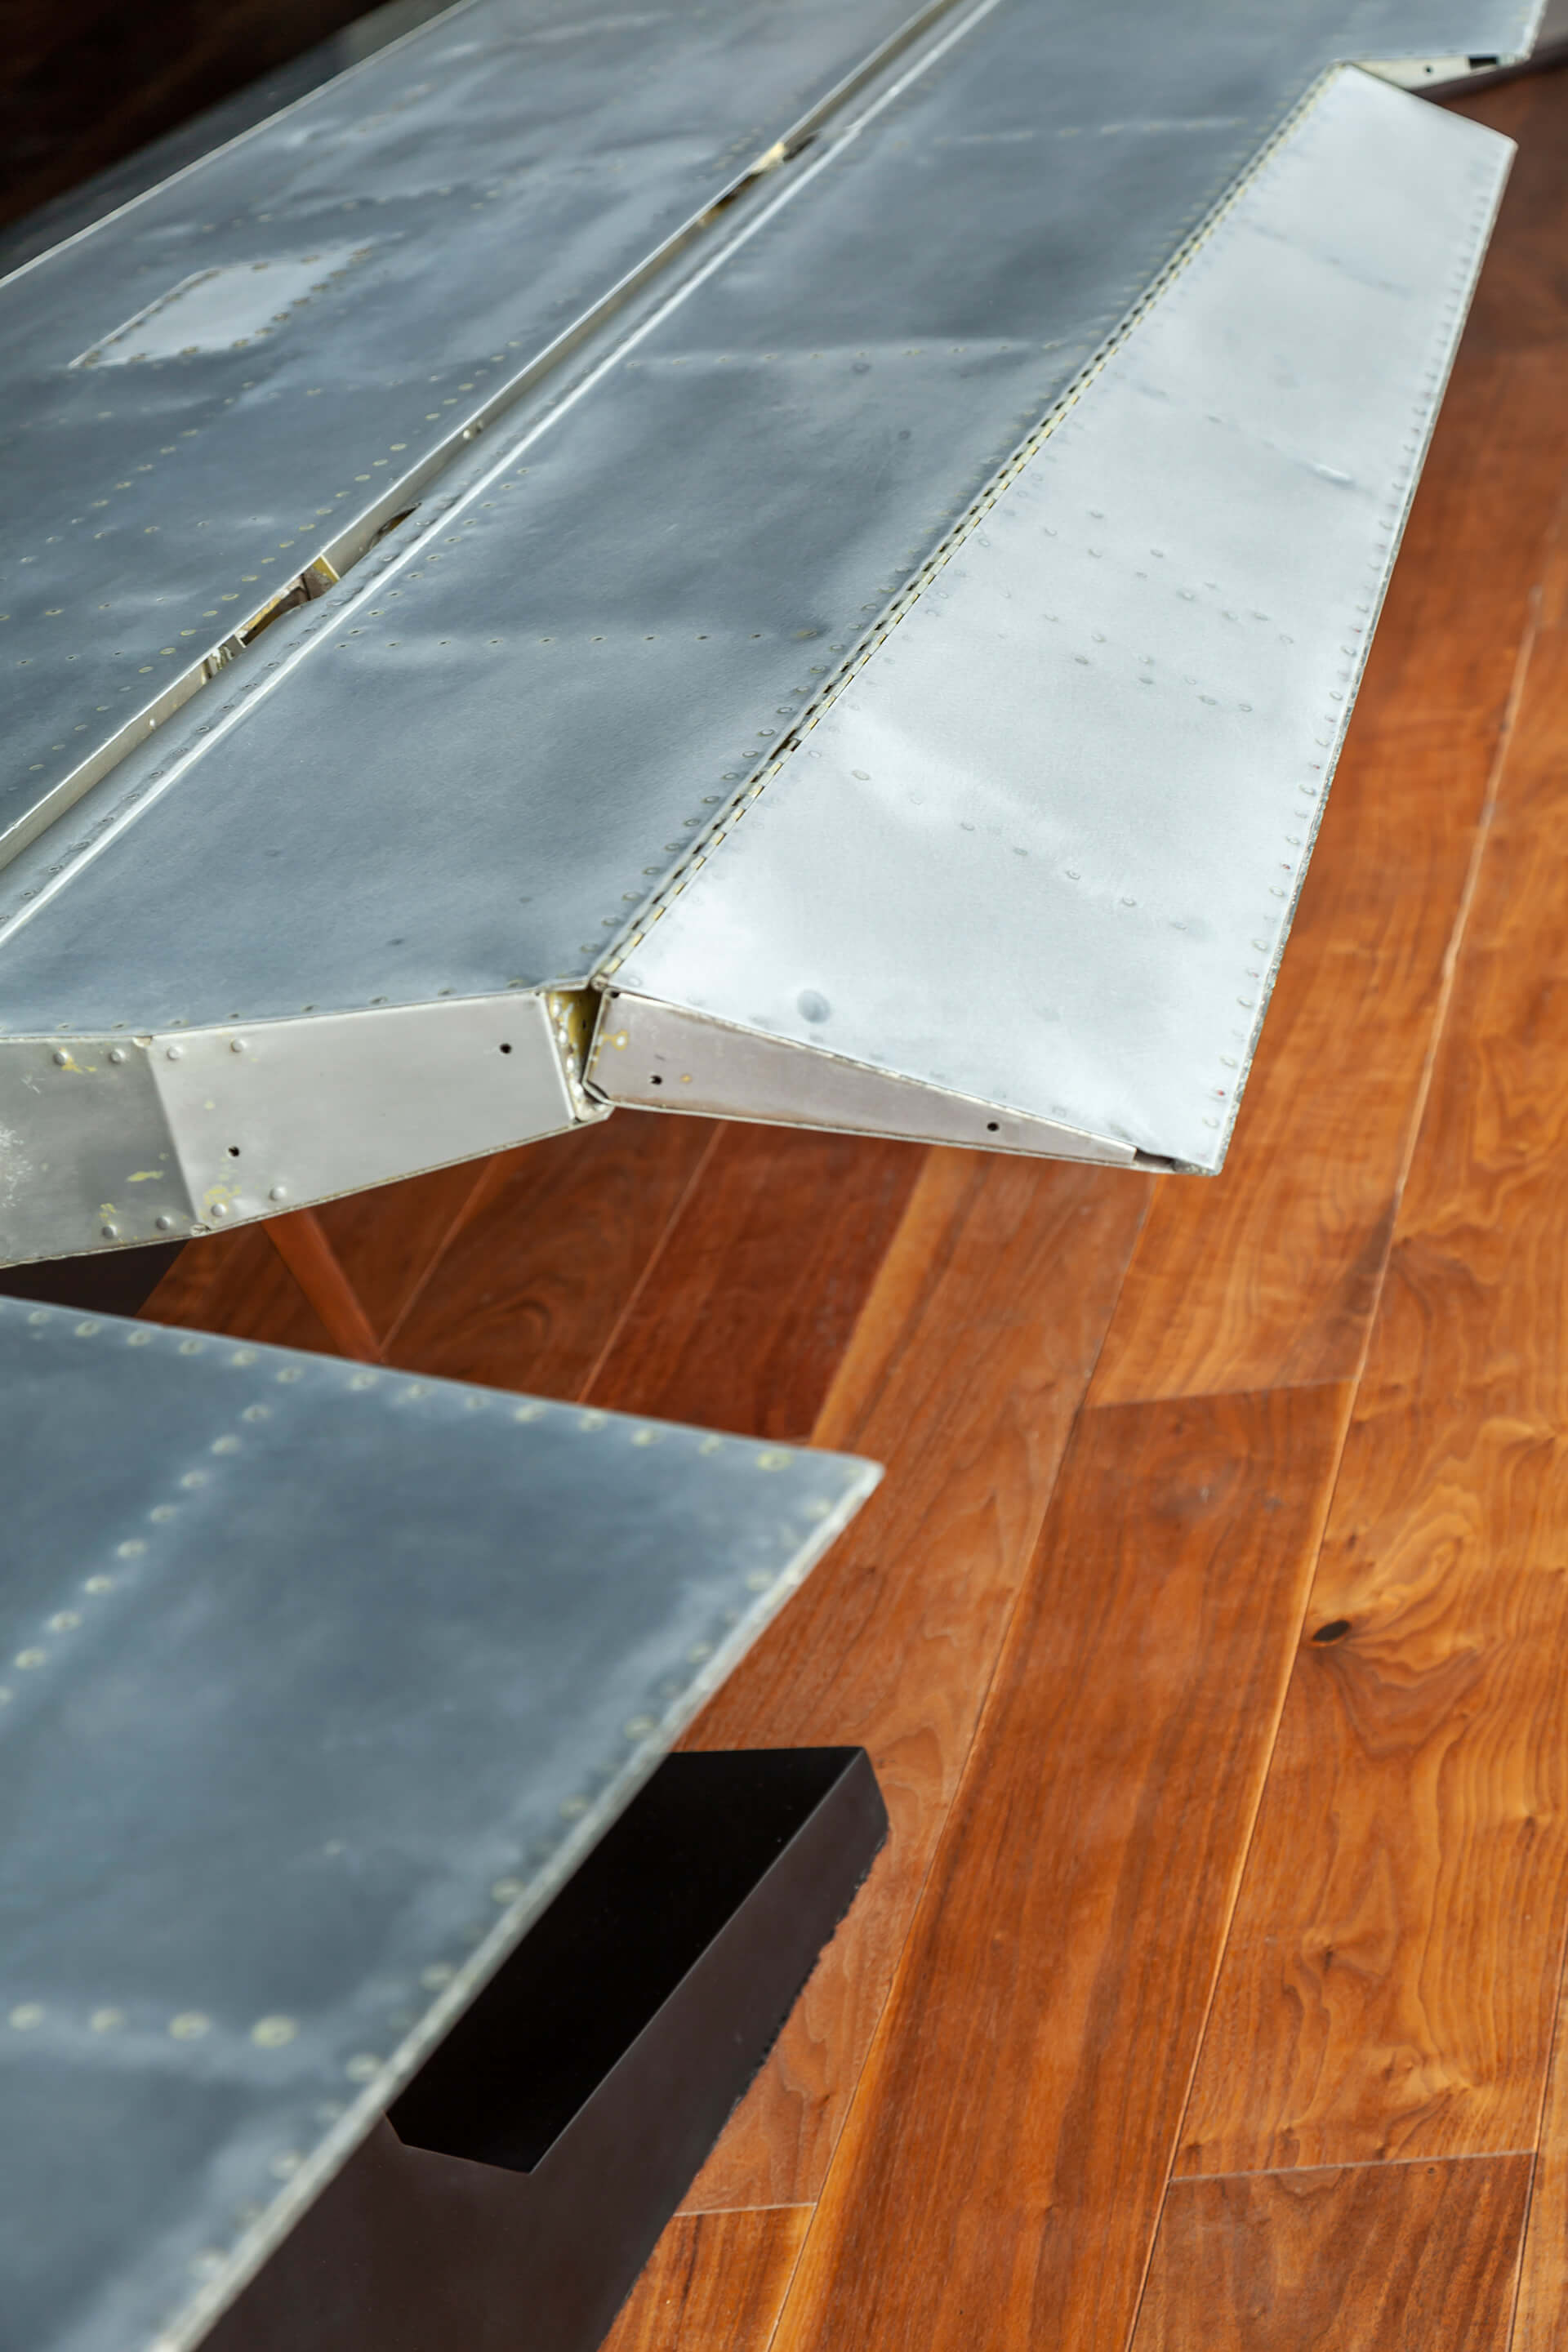 The detail of the Aircraft wing table | East India Hotels headquarters by Architecture Discipline | STIRworld